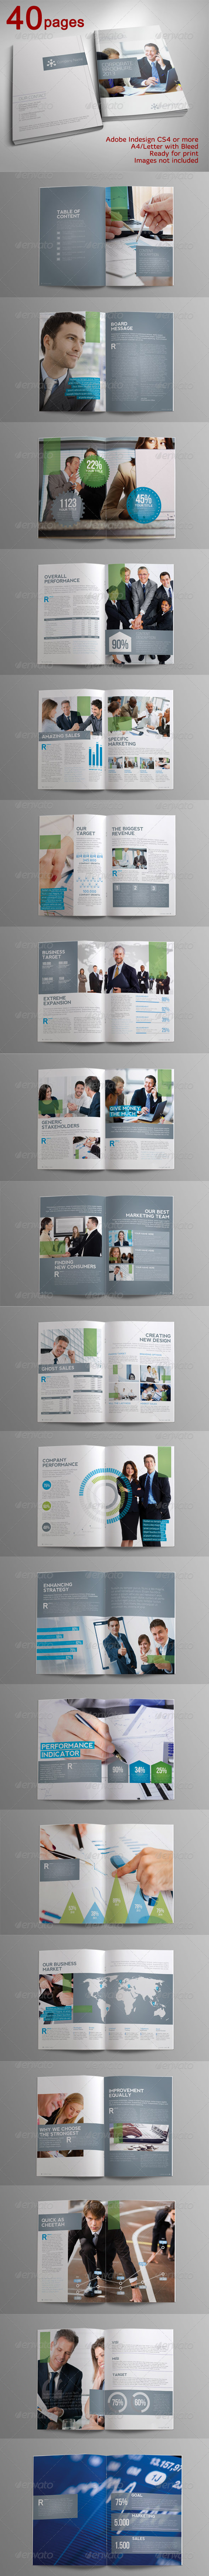 GraphicRiver 40 pages Indah Corporate Brochure 3919272